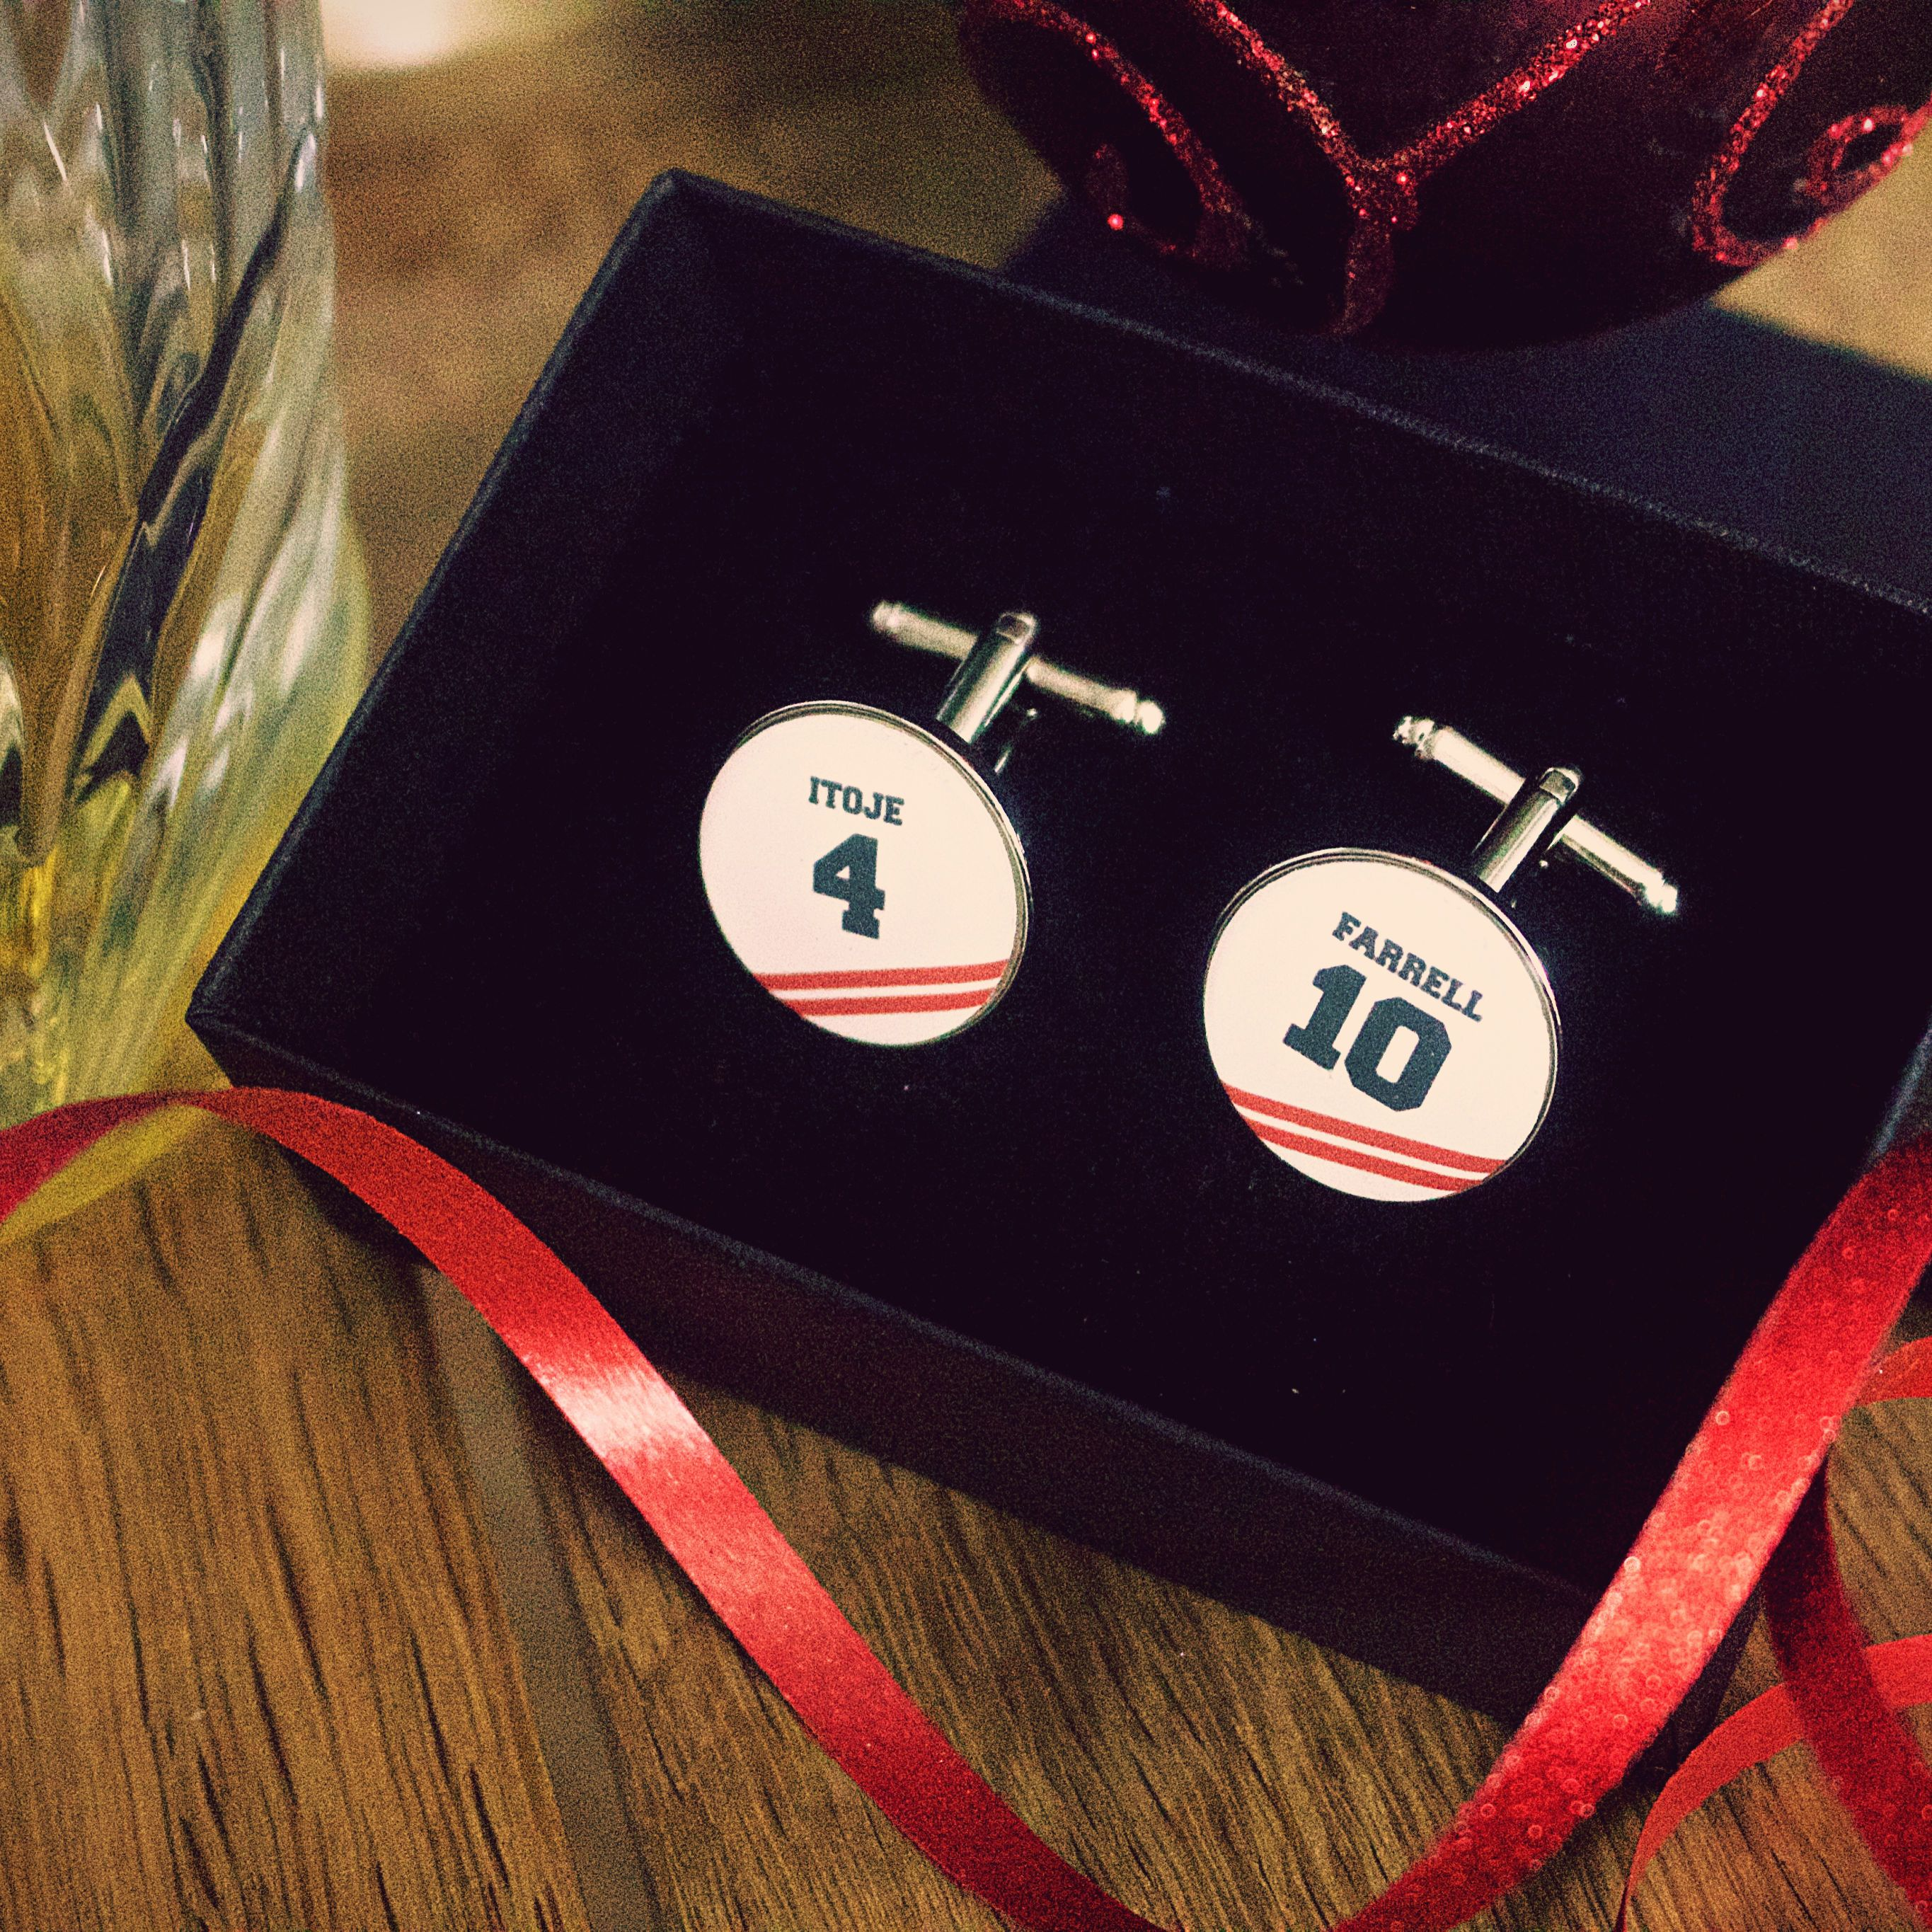 England Rugby Cufflinks Farrell Itoje Christmas Gift For Him Dad Husband Christmas Gift For Dad Rugby Gifts Unique Personalized Gift